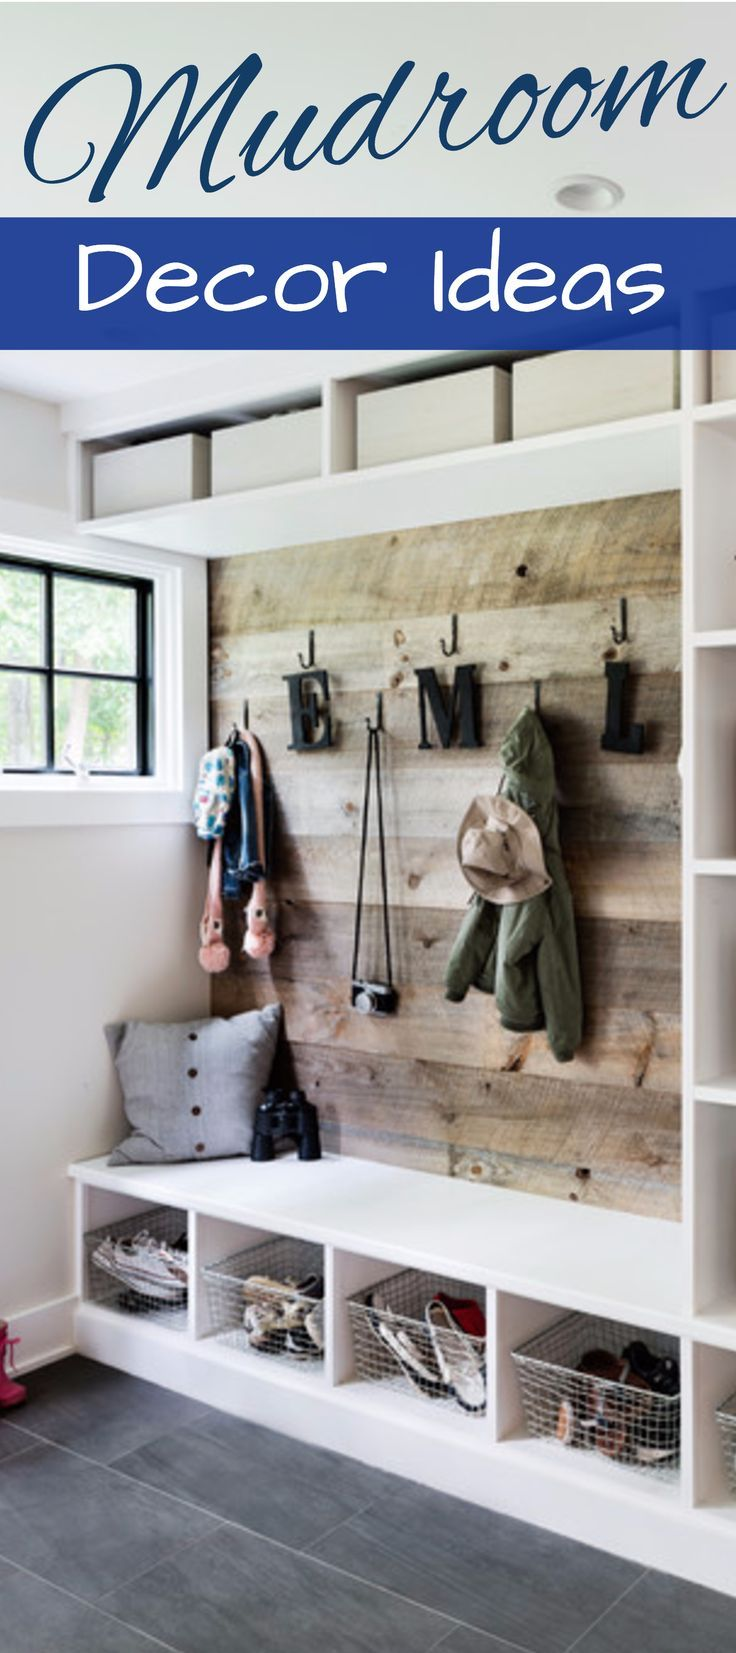 Diy Mudroom Decorating And Design Ideas Great Ideas For